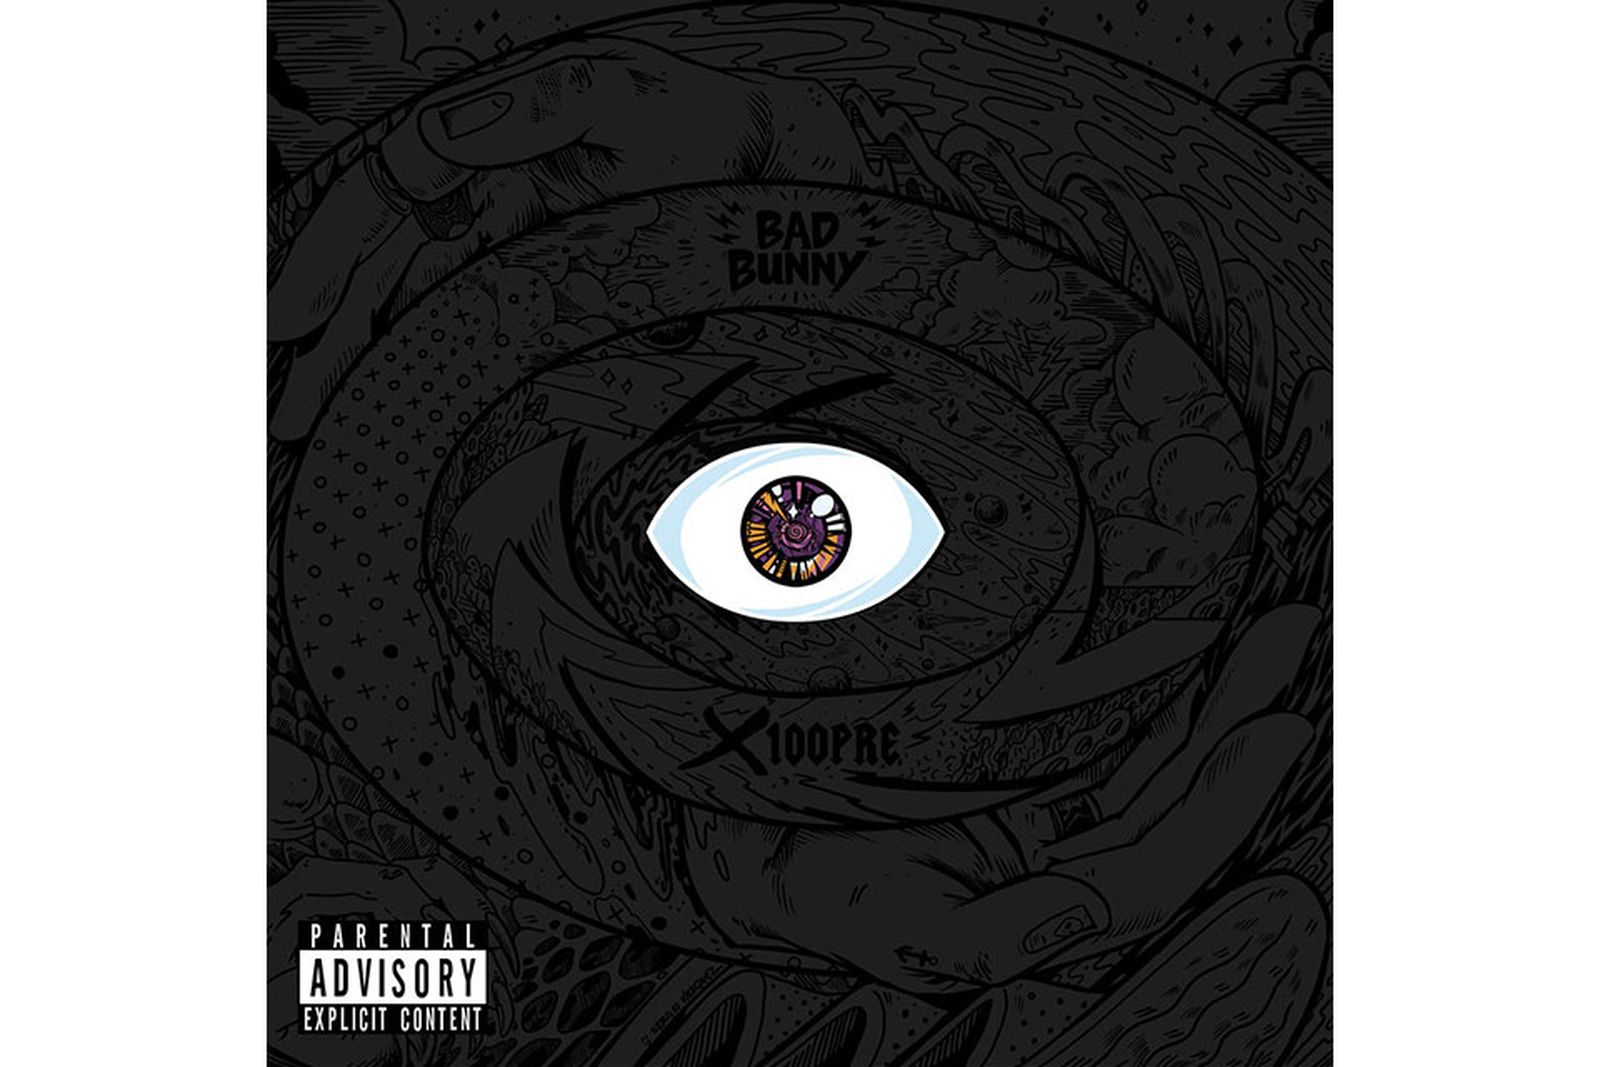 bad bunny x 100pre review